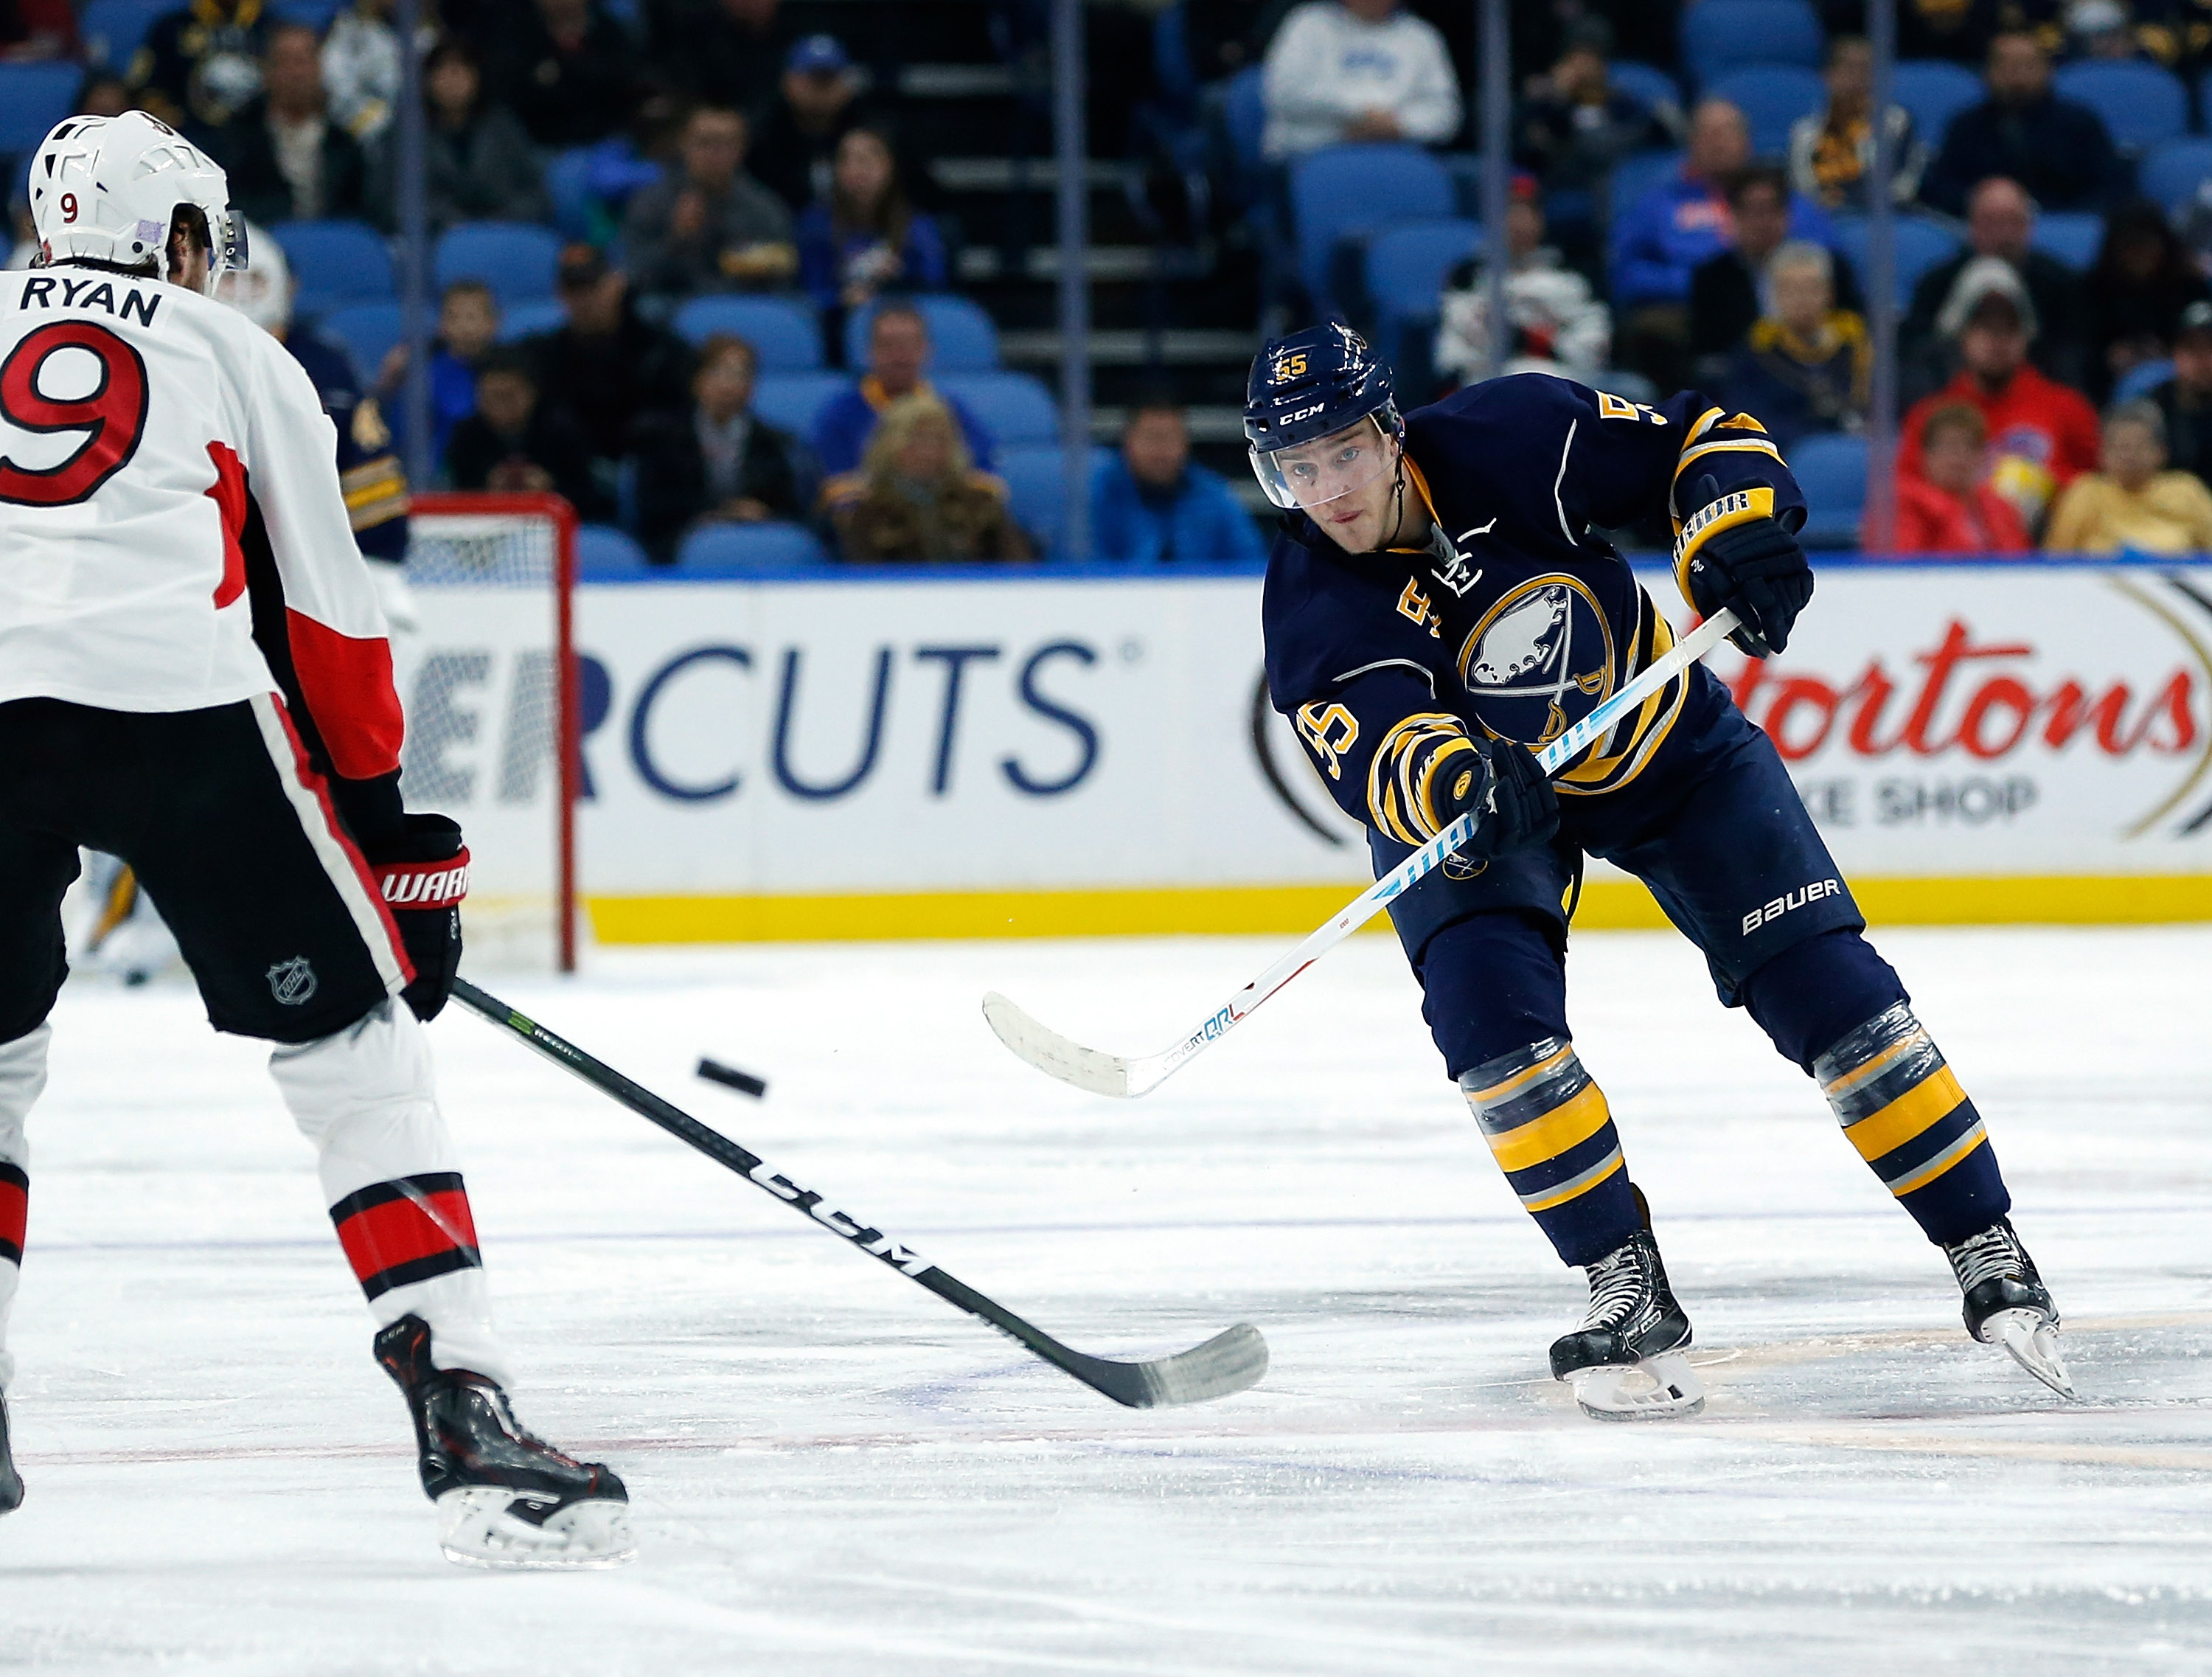 After two goals and 10 assists in nine games, Rasmus Ristolainen is on pace for 57 points. (Getty Images)